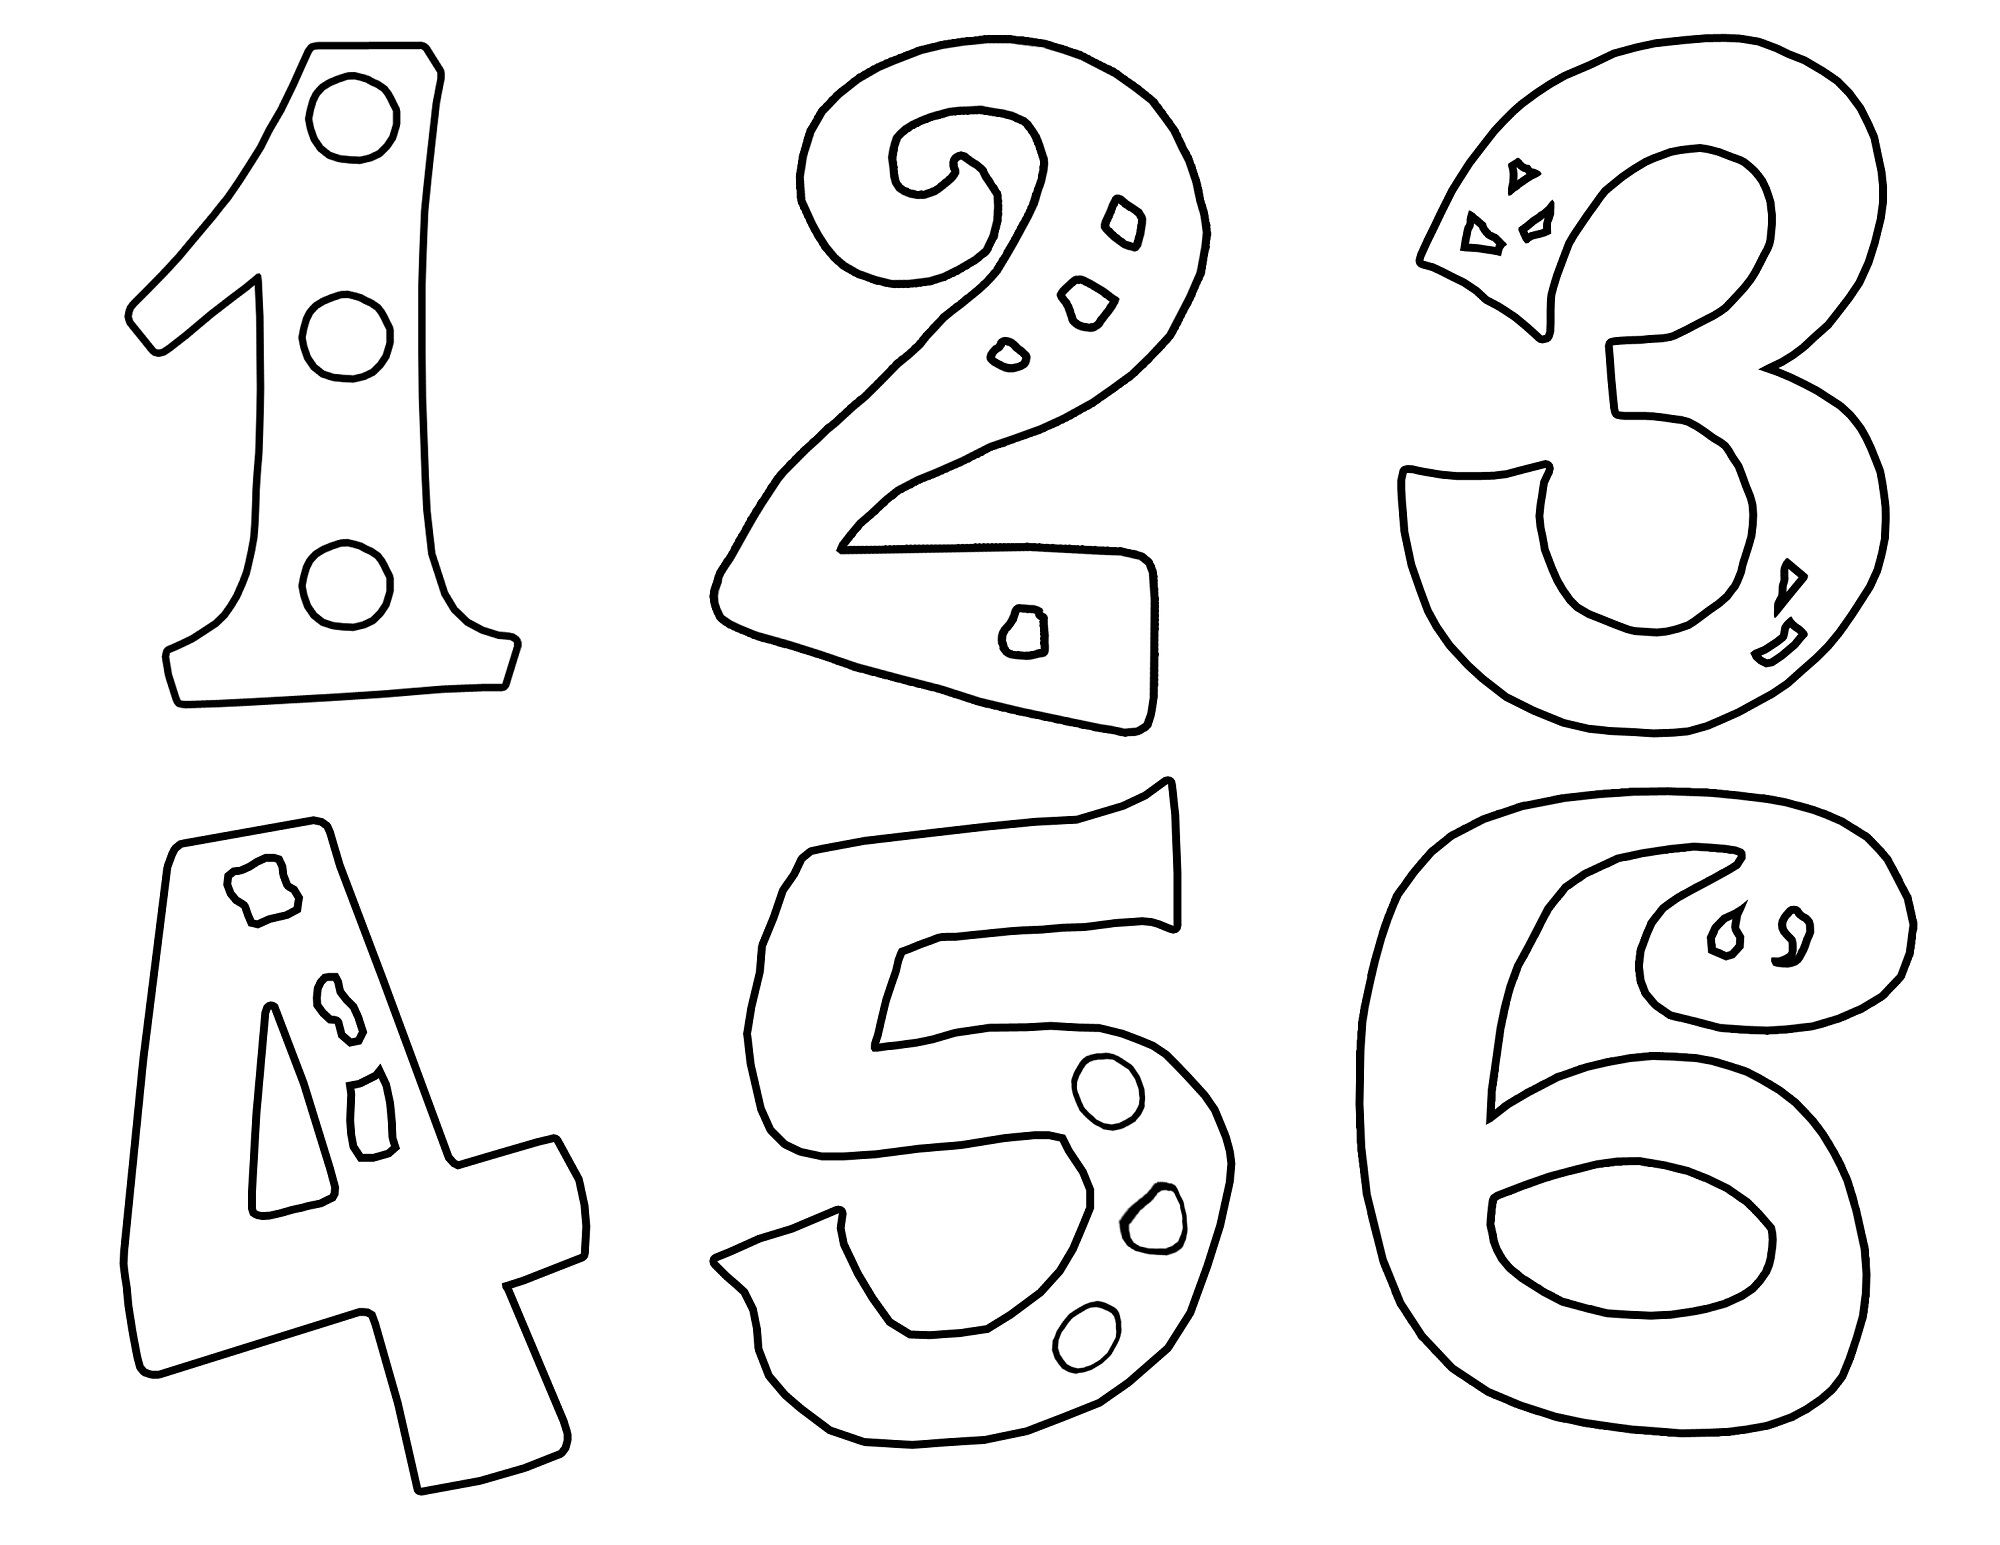 Number Color Pages for Kids | Activity Shelter | Coloring Pages for ...